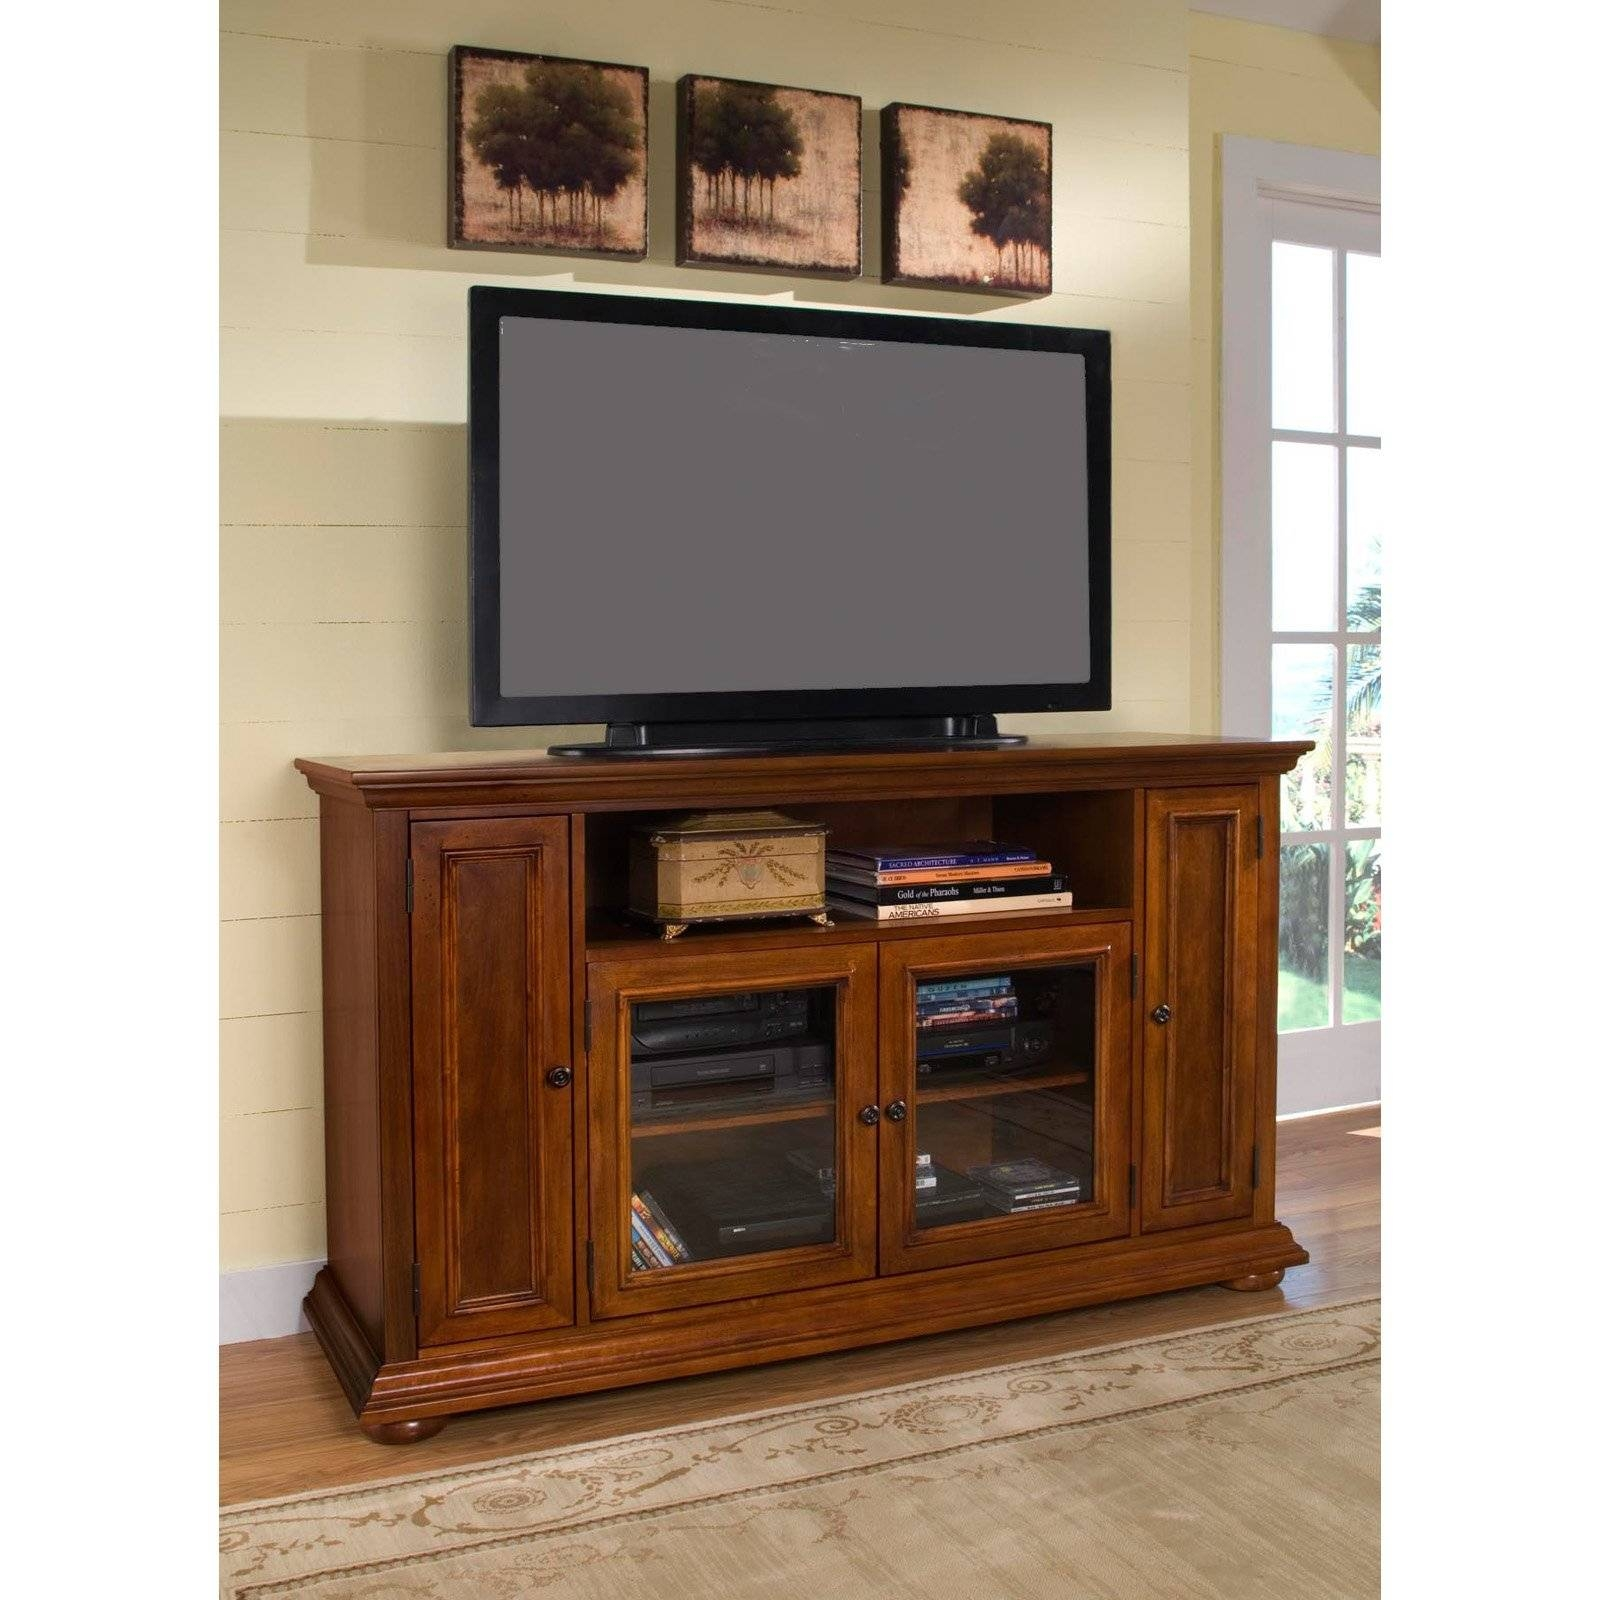 Rectangle Black Flat Screen Tv Over Brown Wooden Cabinet With with regard to Wooden Tv Cabinets With Glass Doors (Image 13 of 15)